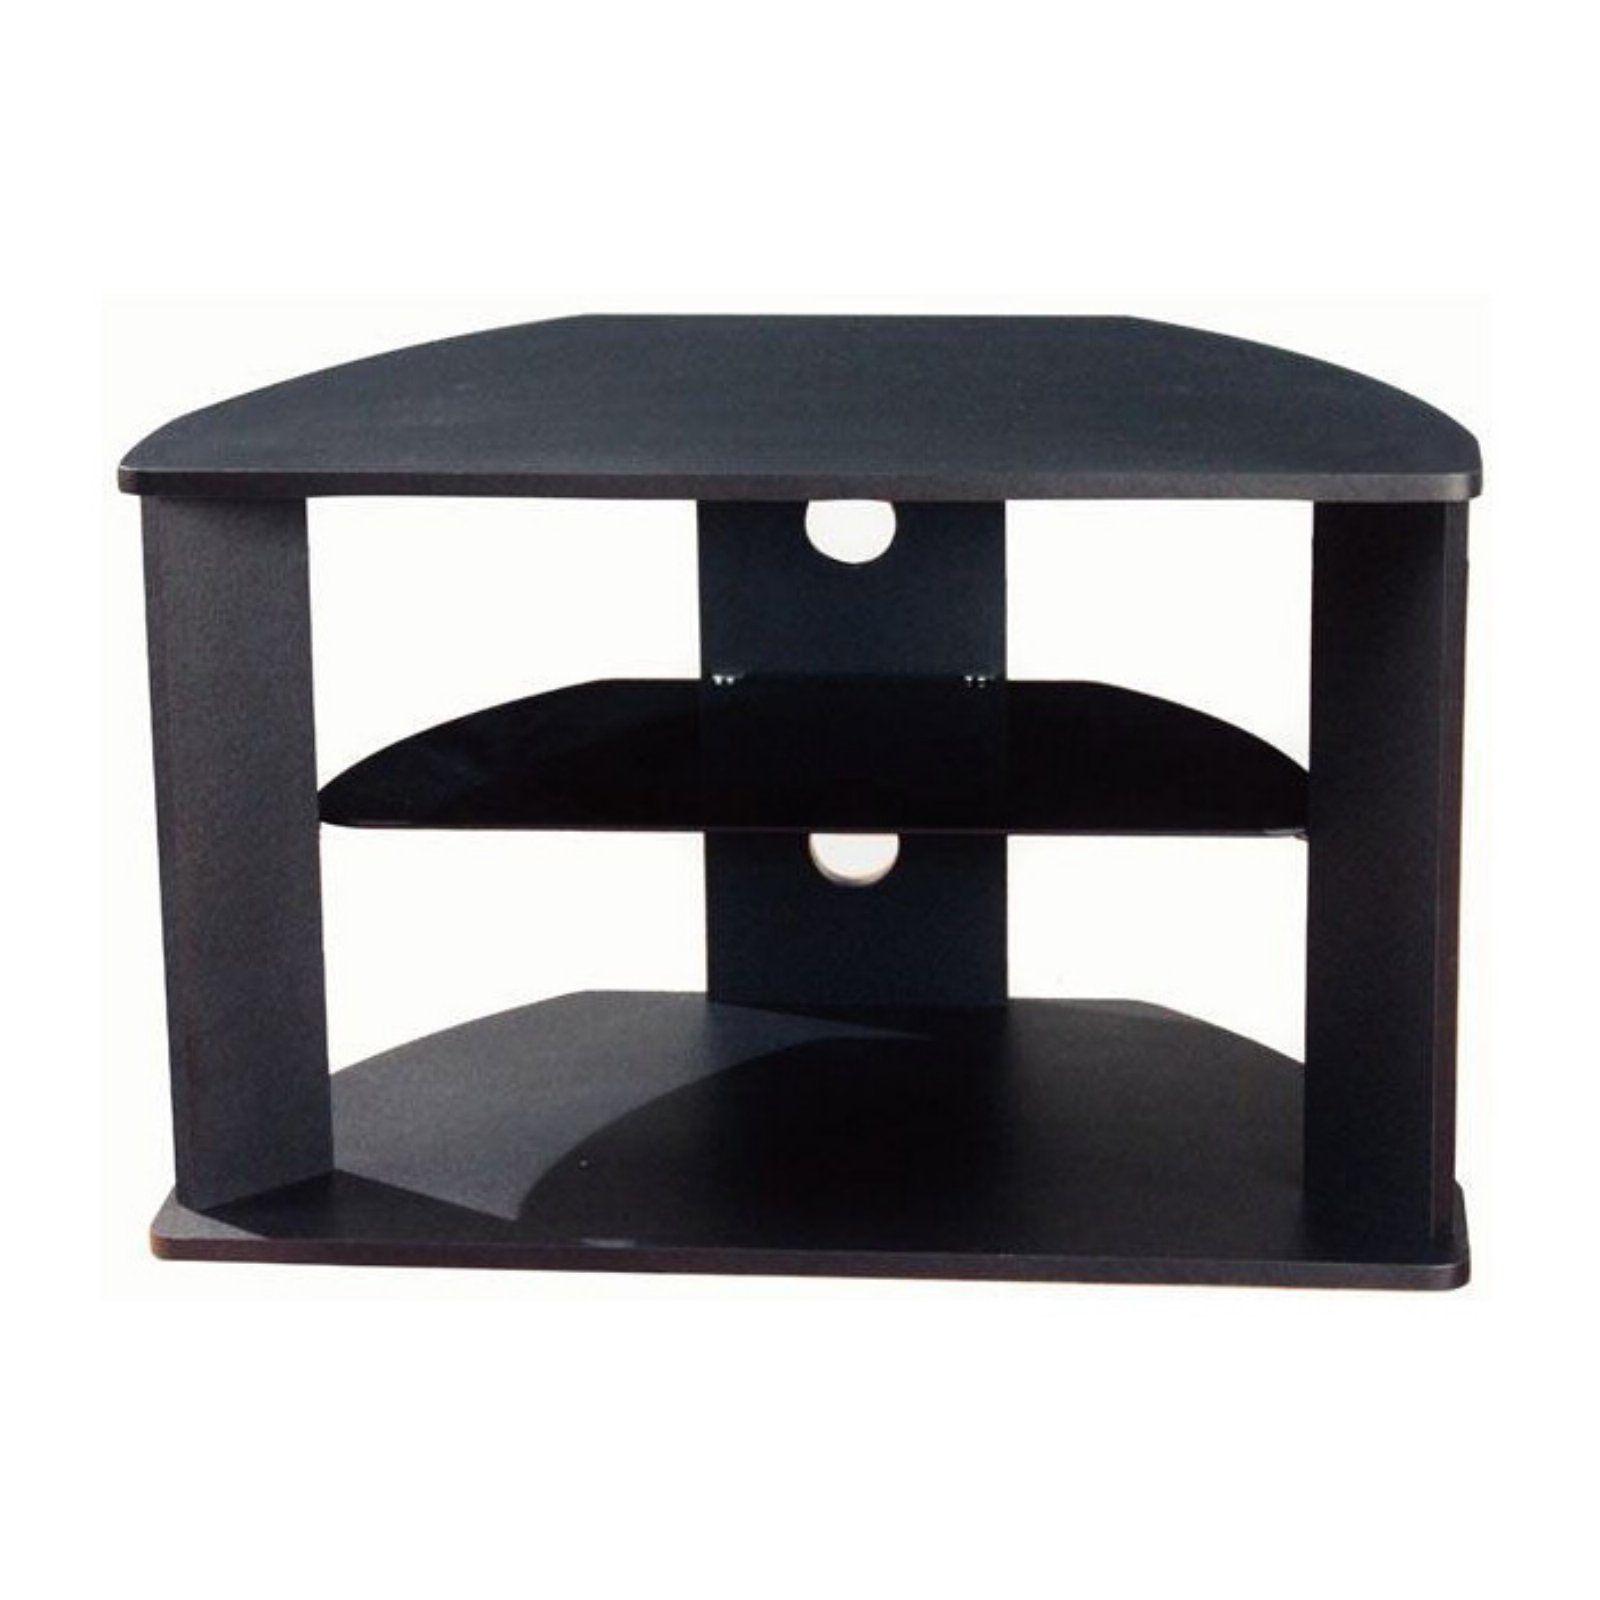 4D CONCEPTS CORNER TV CART, BLACK